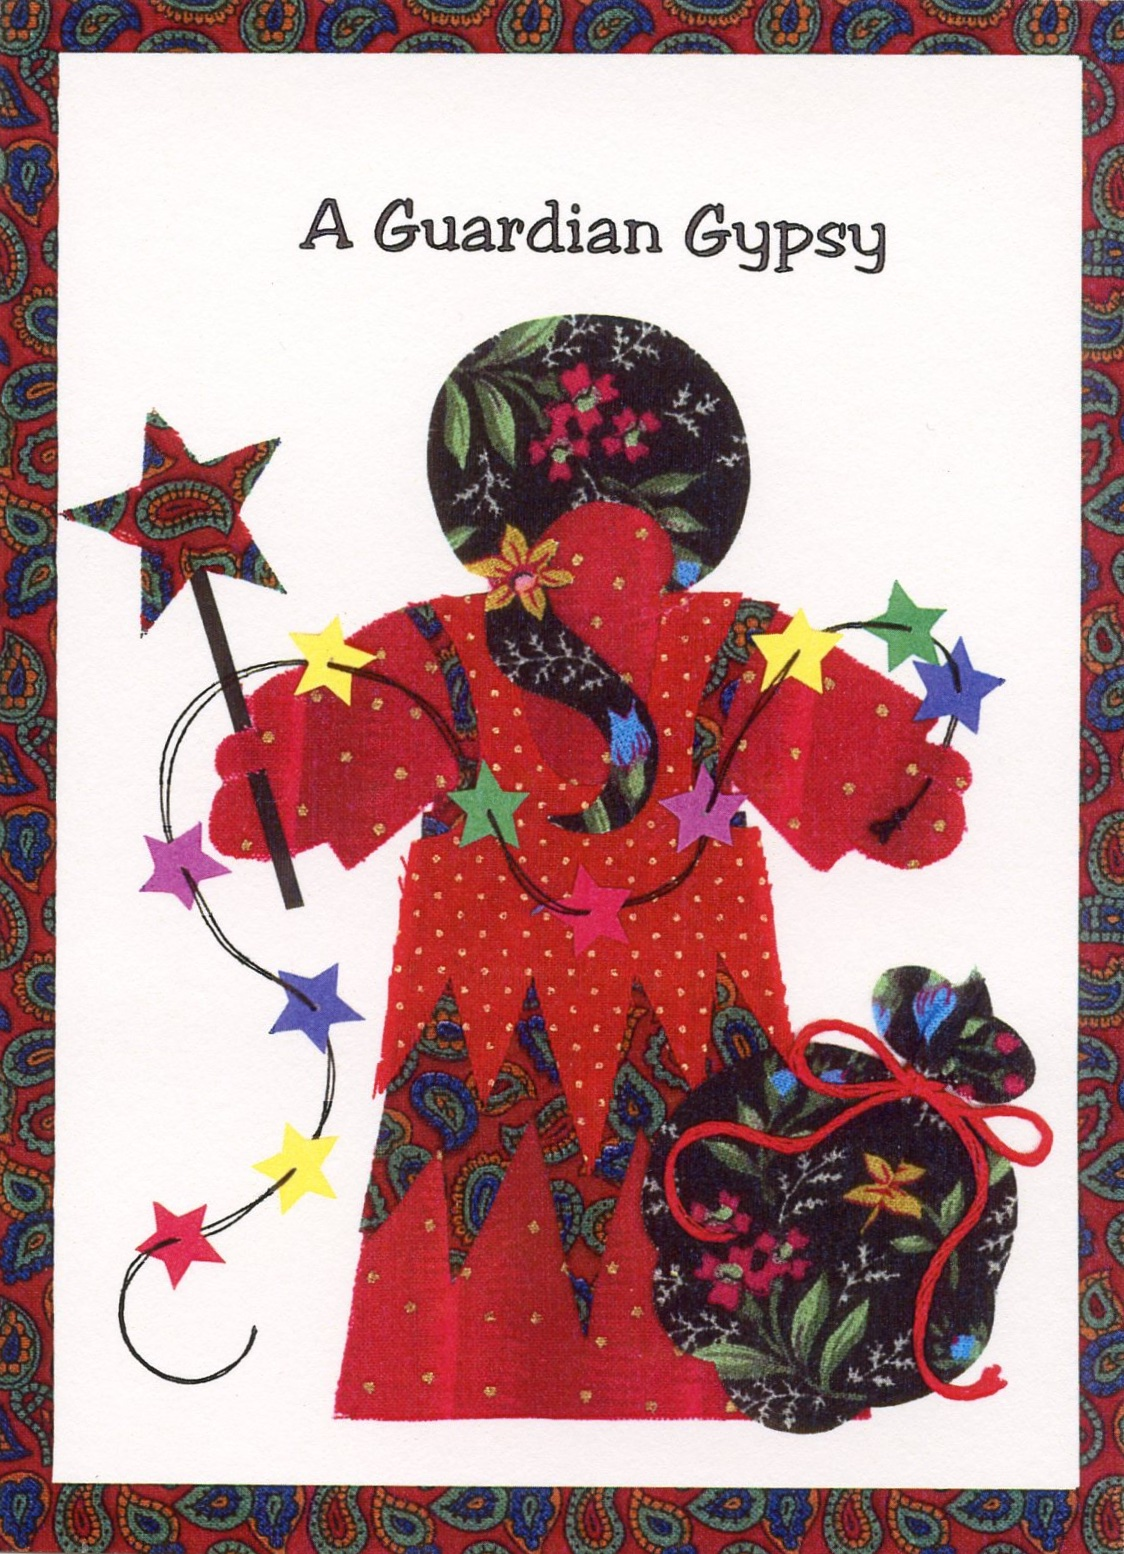 A Guardian Gypsy-KariCates.jpg